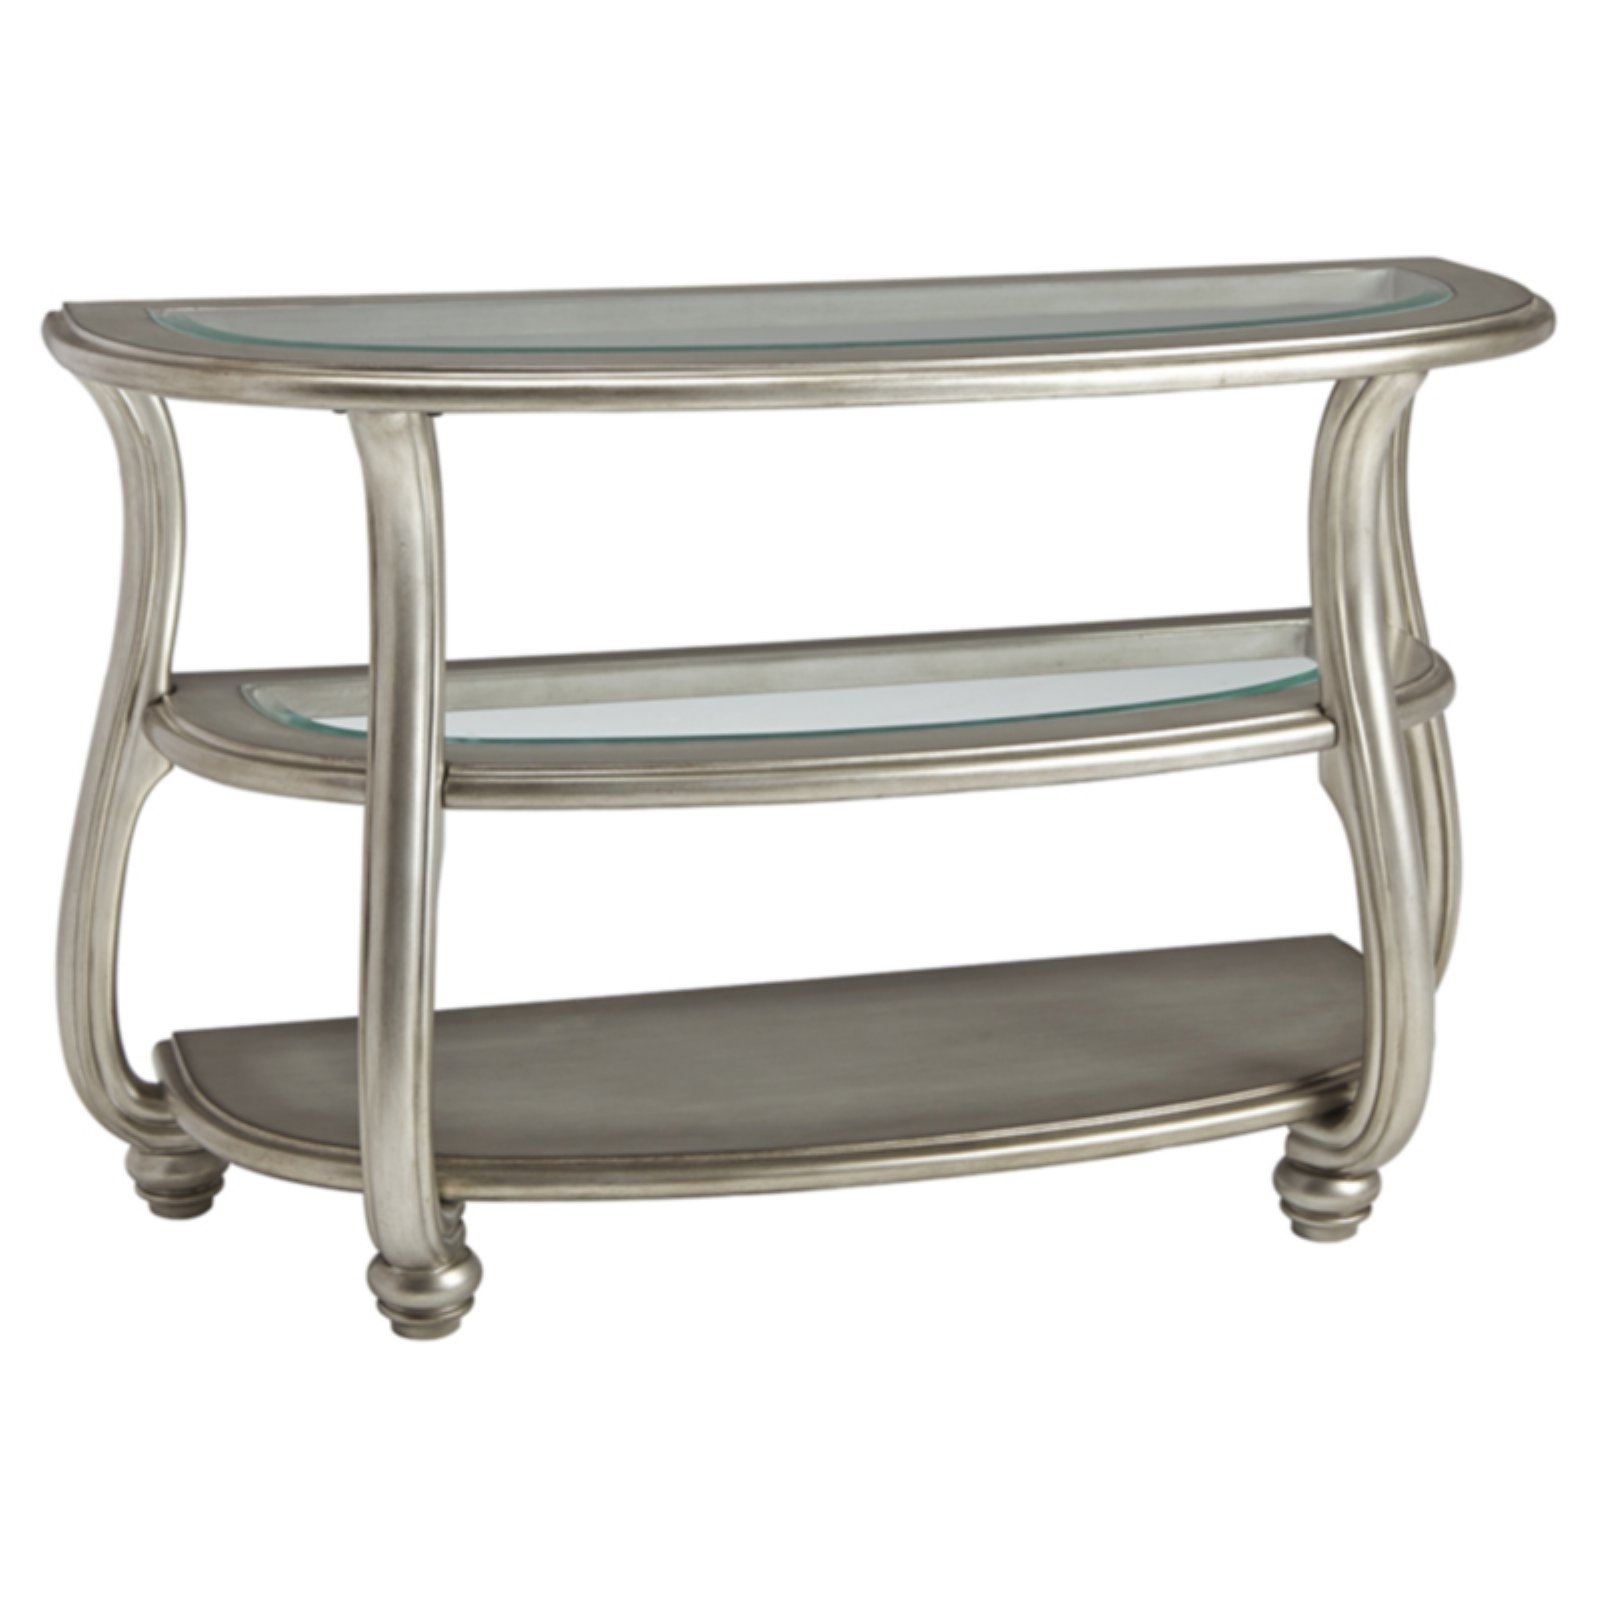 Signature Design by Ashley Coralayne Glass Top Sofa Table